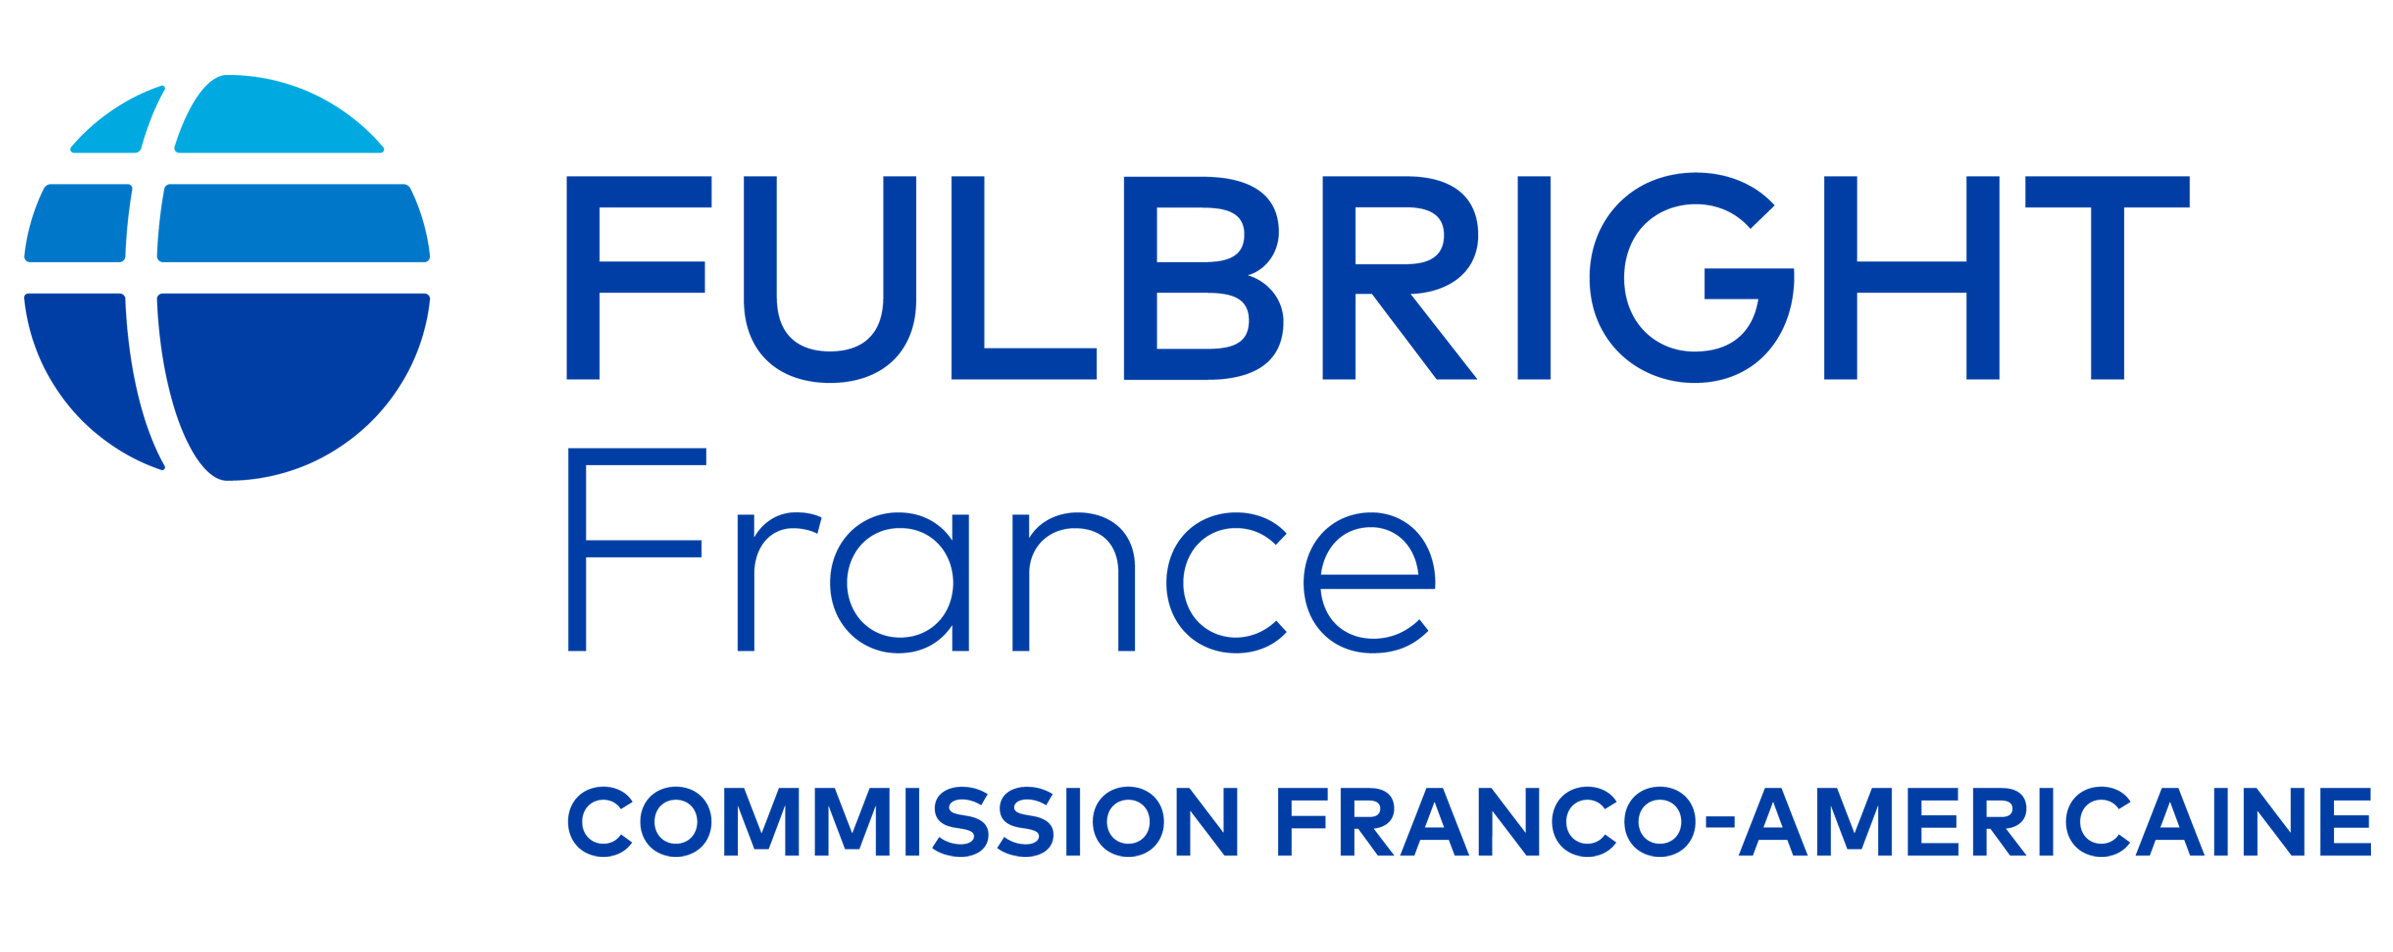 Fulbright France